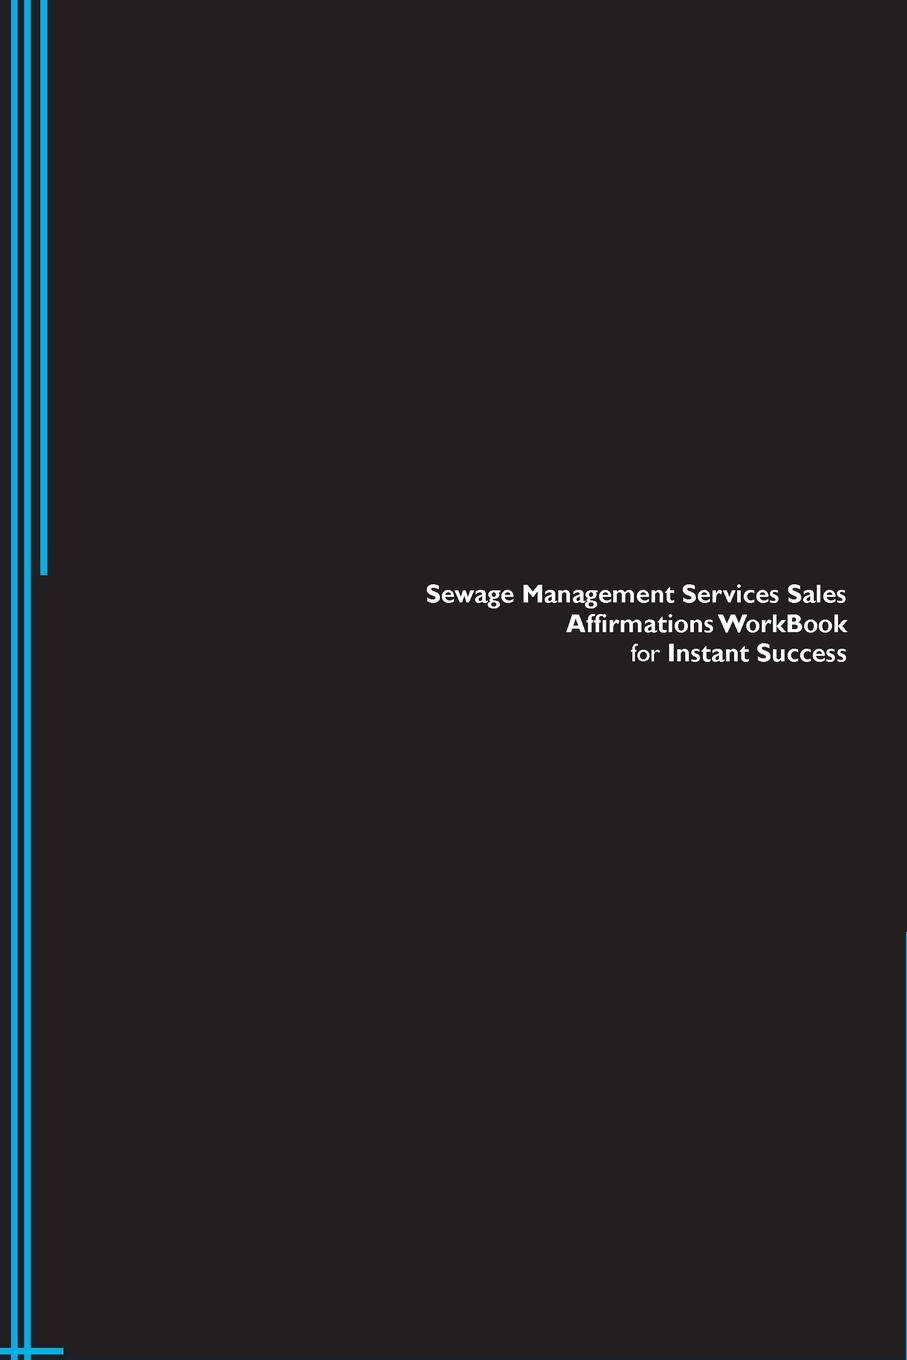 Success Experts Sewage Management Services Sales Affirmations Workbook for Instant Success. Sewage Management Services Sales Positive . Empowering Affirmations Workbook. Includes. Sewage Management Services Sales Subliminal Empowerment. hot sales 80 printhead for hp80 print head hp for designjet 1000 1000plus 1050 1055 printer